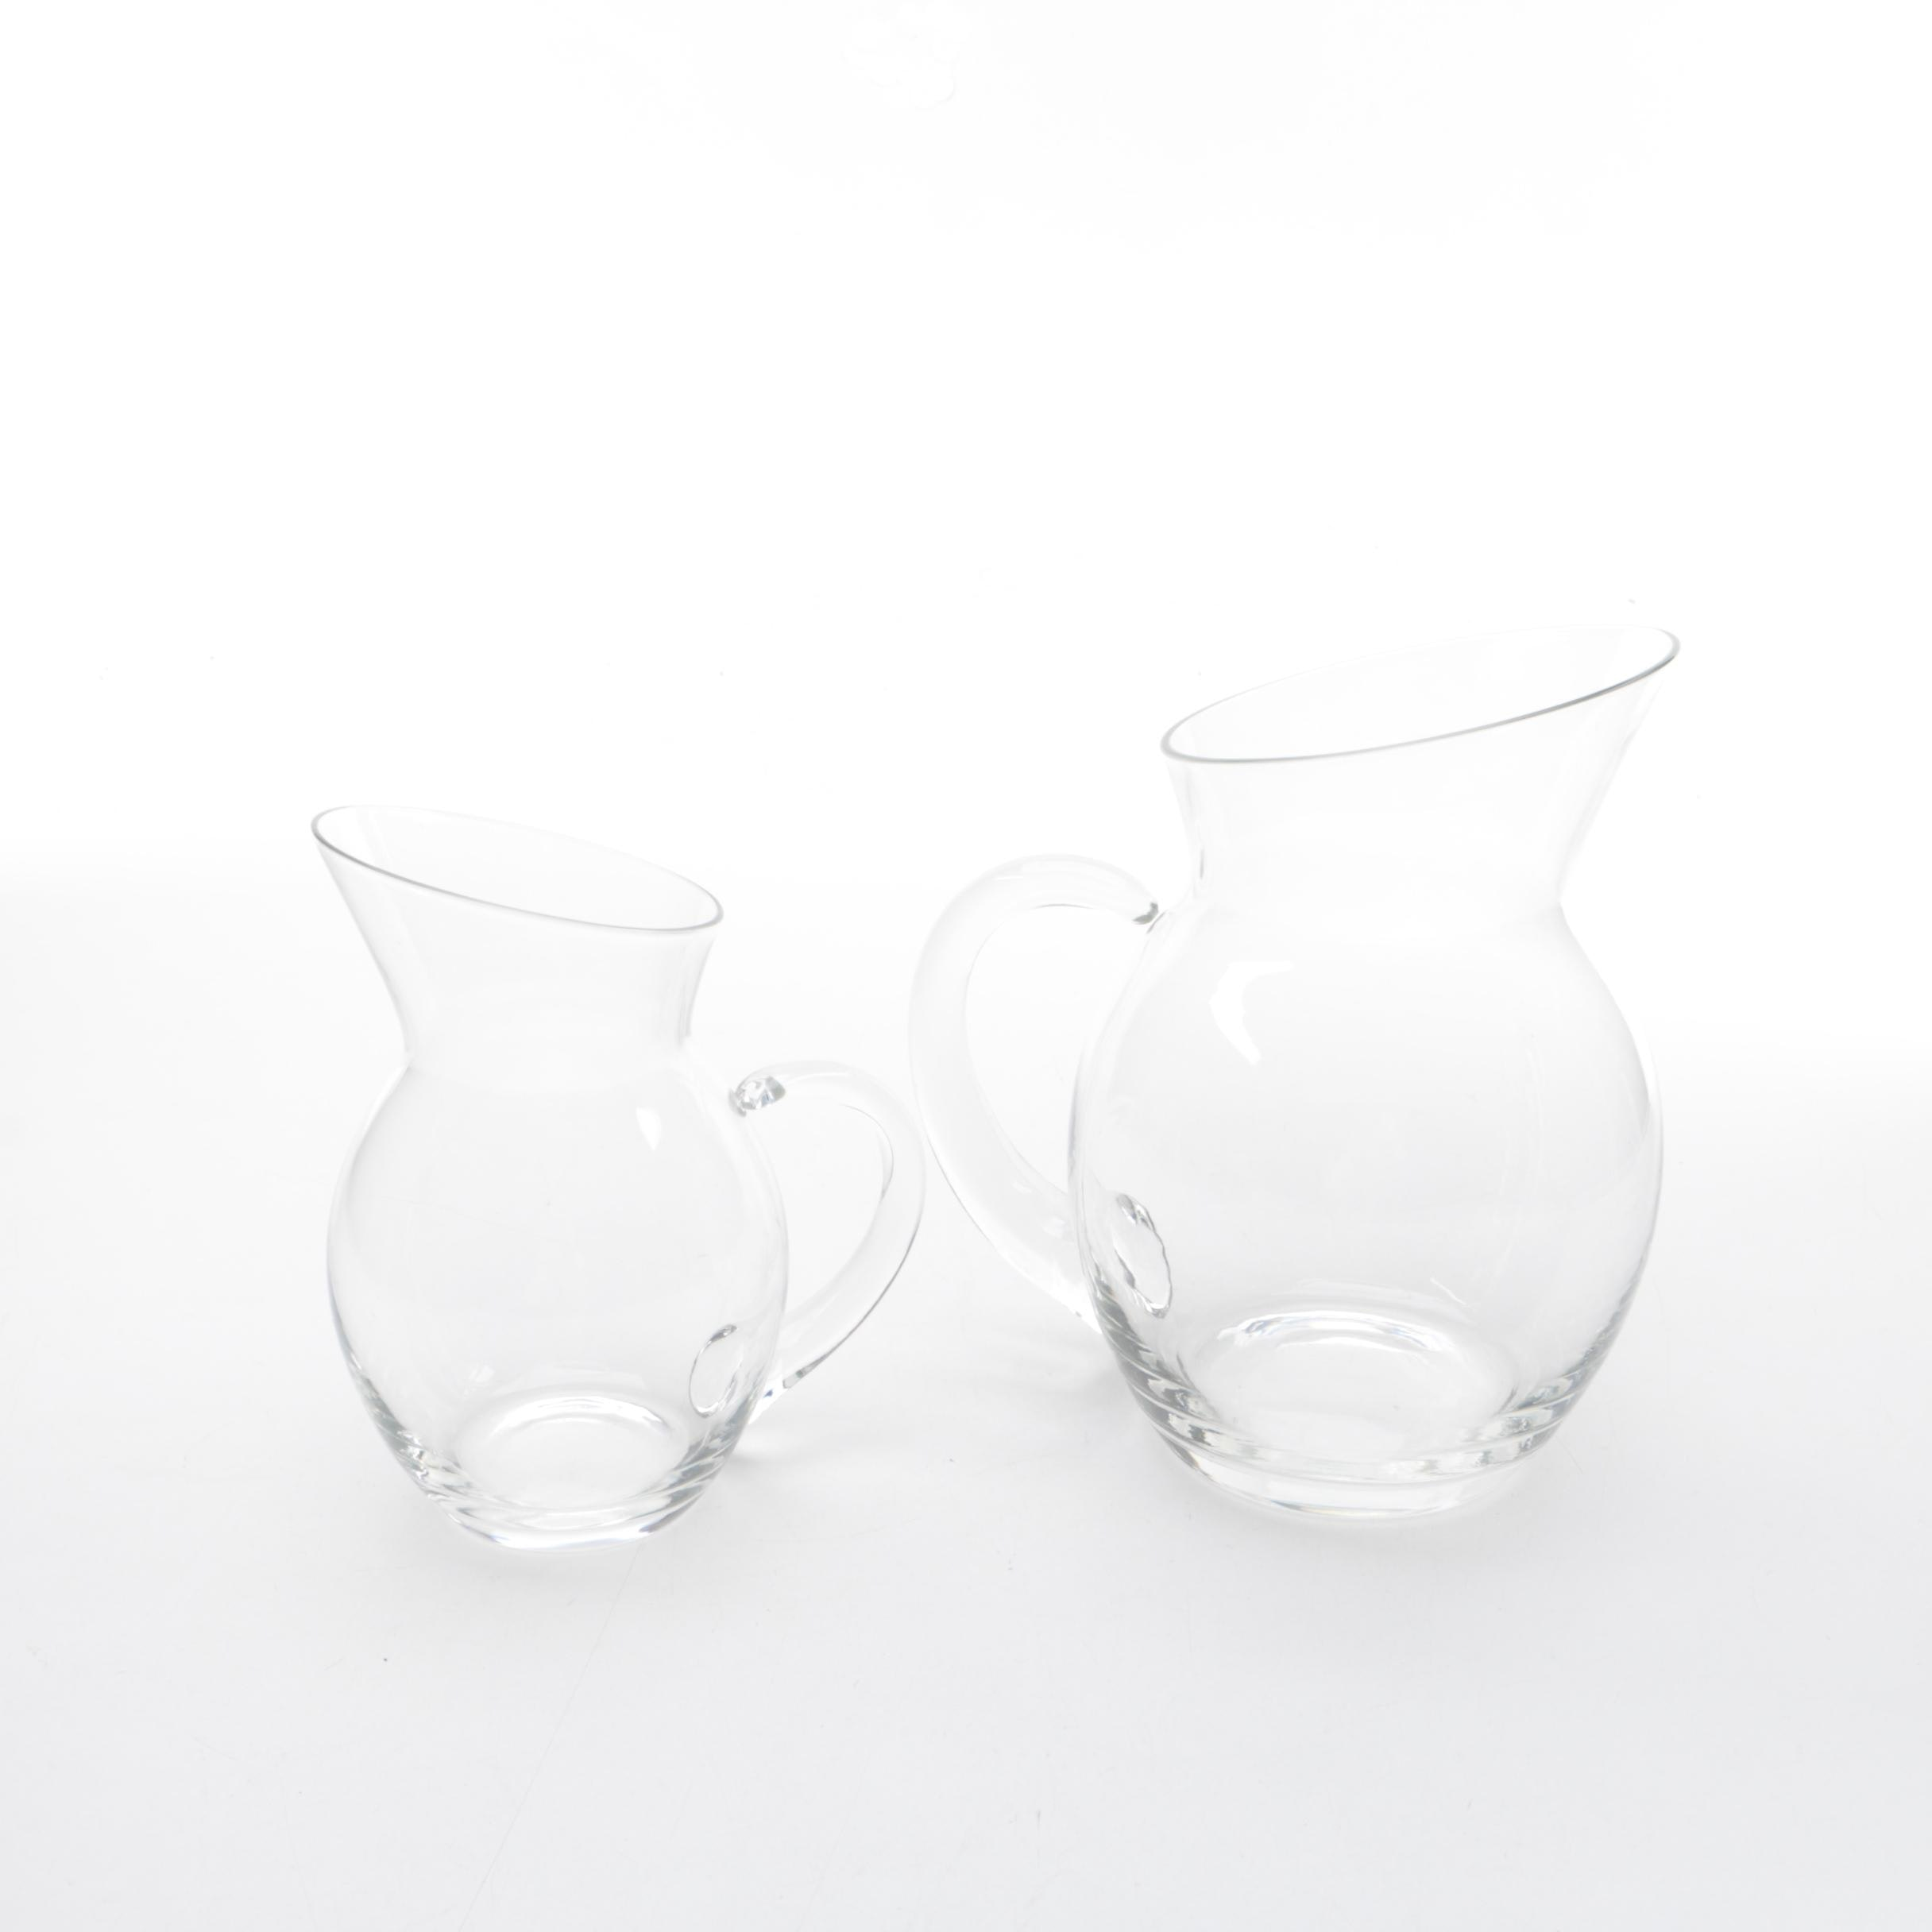 Pair of Contemporary Glass Pitchers